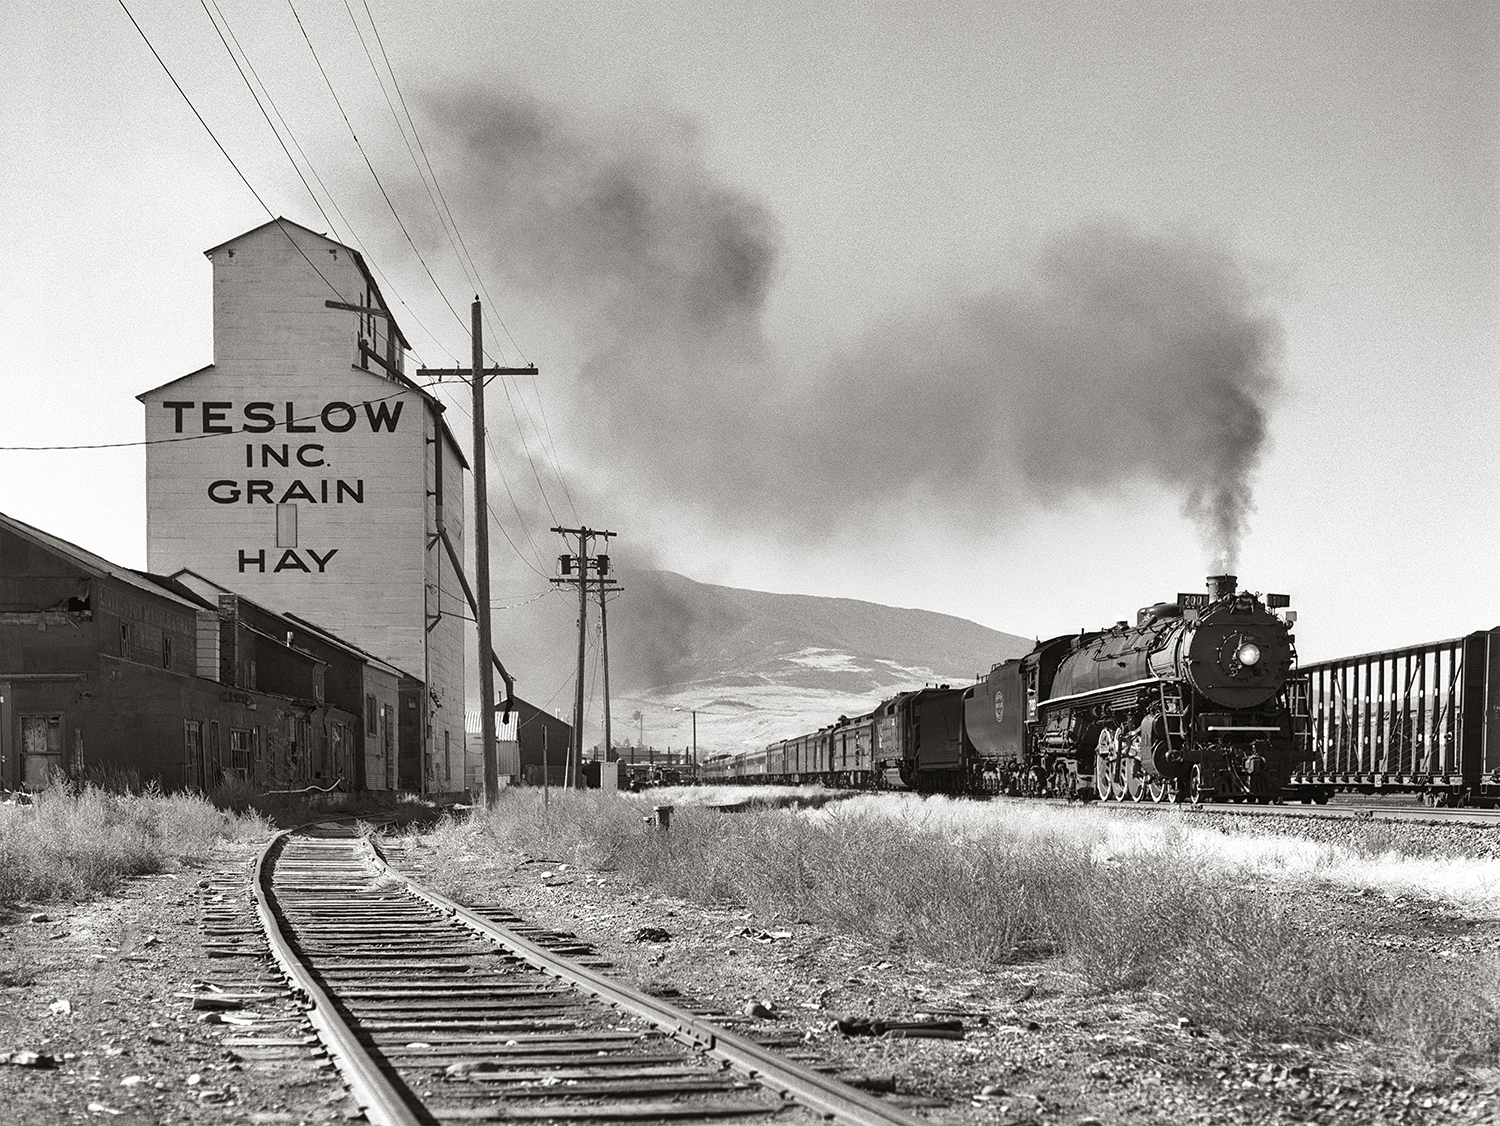 SP&S No. 700, a steam locomotive out of Portland, Oregon, leads a passenger train through Livingston, Montana and a bright autumn day in October 2002. This was the first time this route had seen a steam locomotive in 50 years.